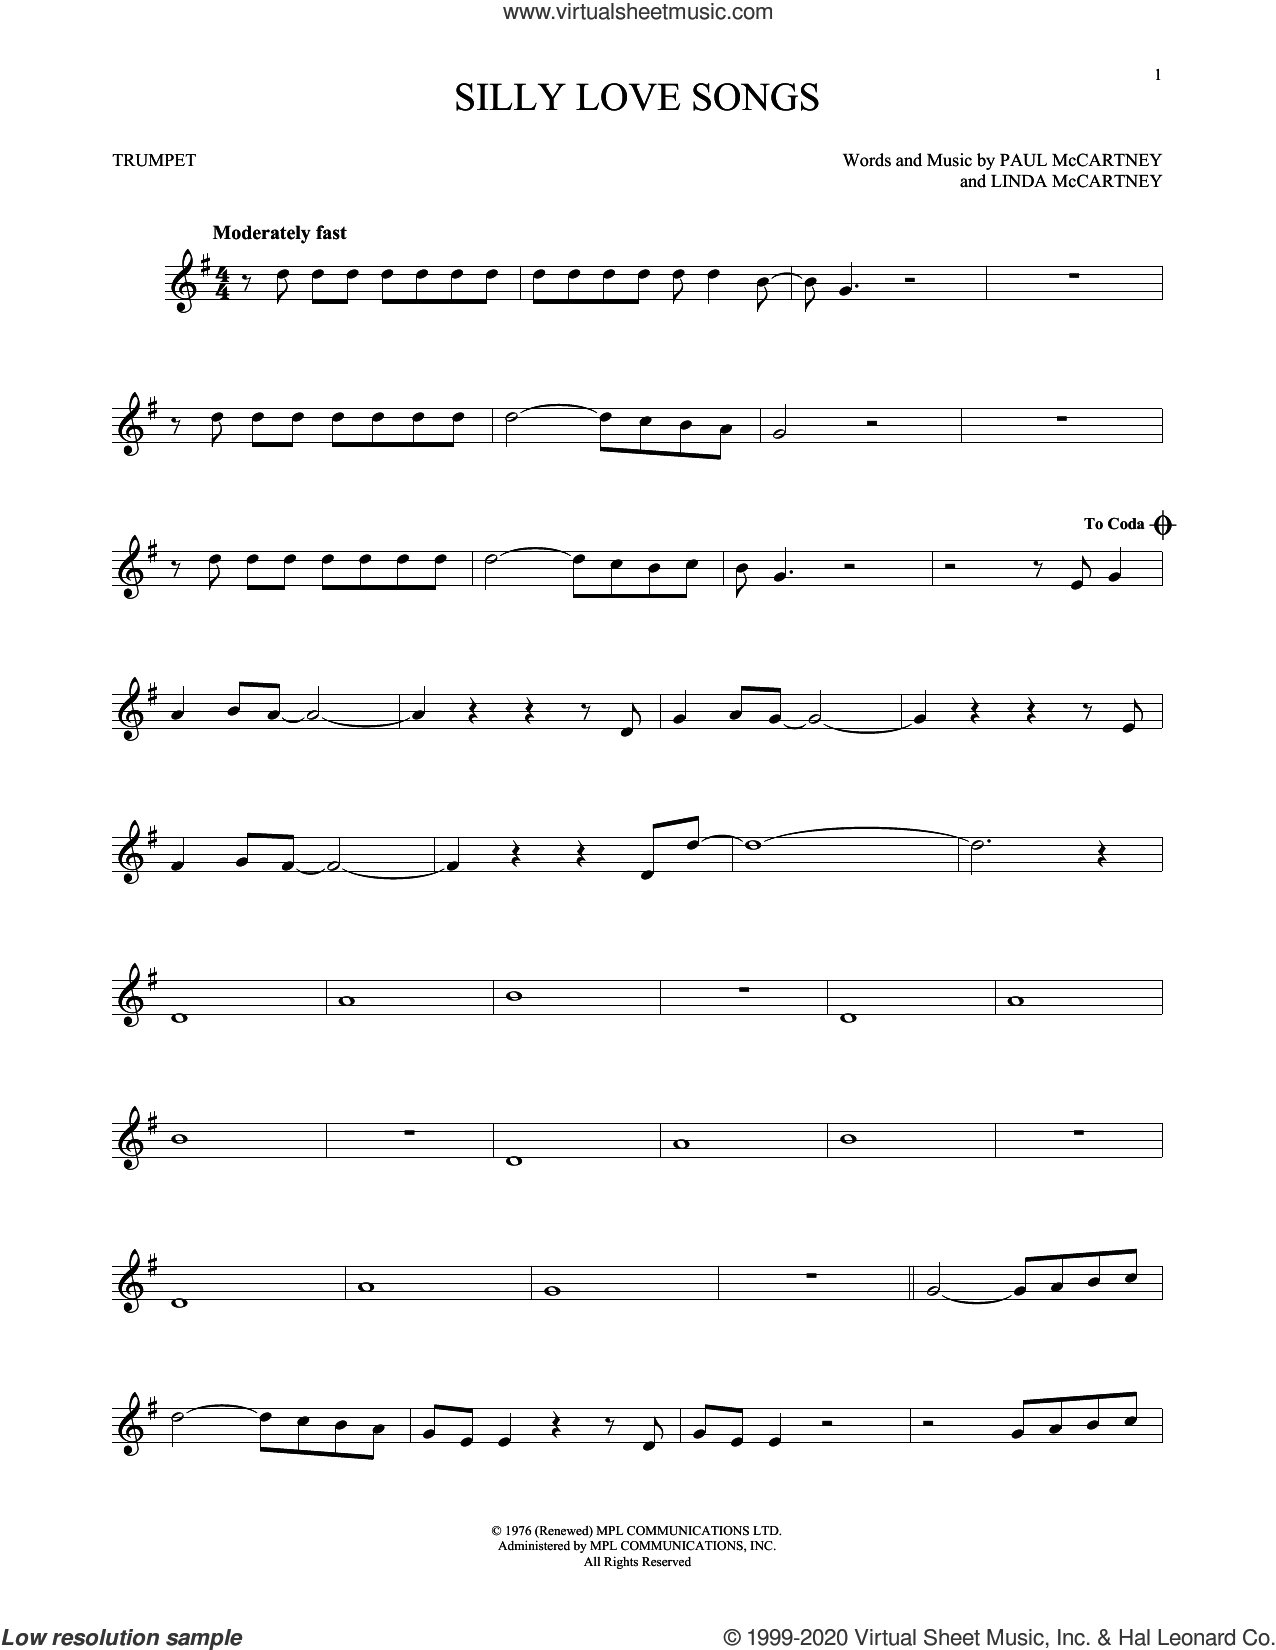 Silly Love Songs sheet music for trumpet solo by Wings, Linda McCartney and Paul McCartney, intermediate skill level